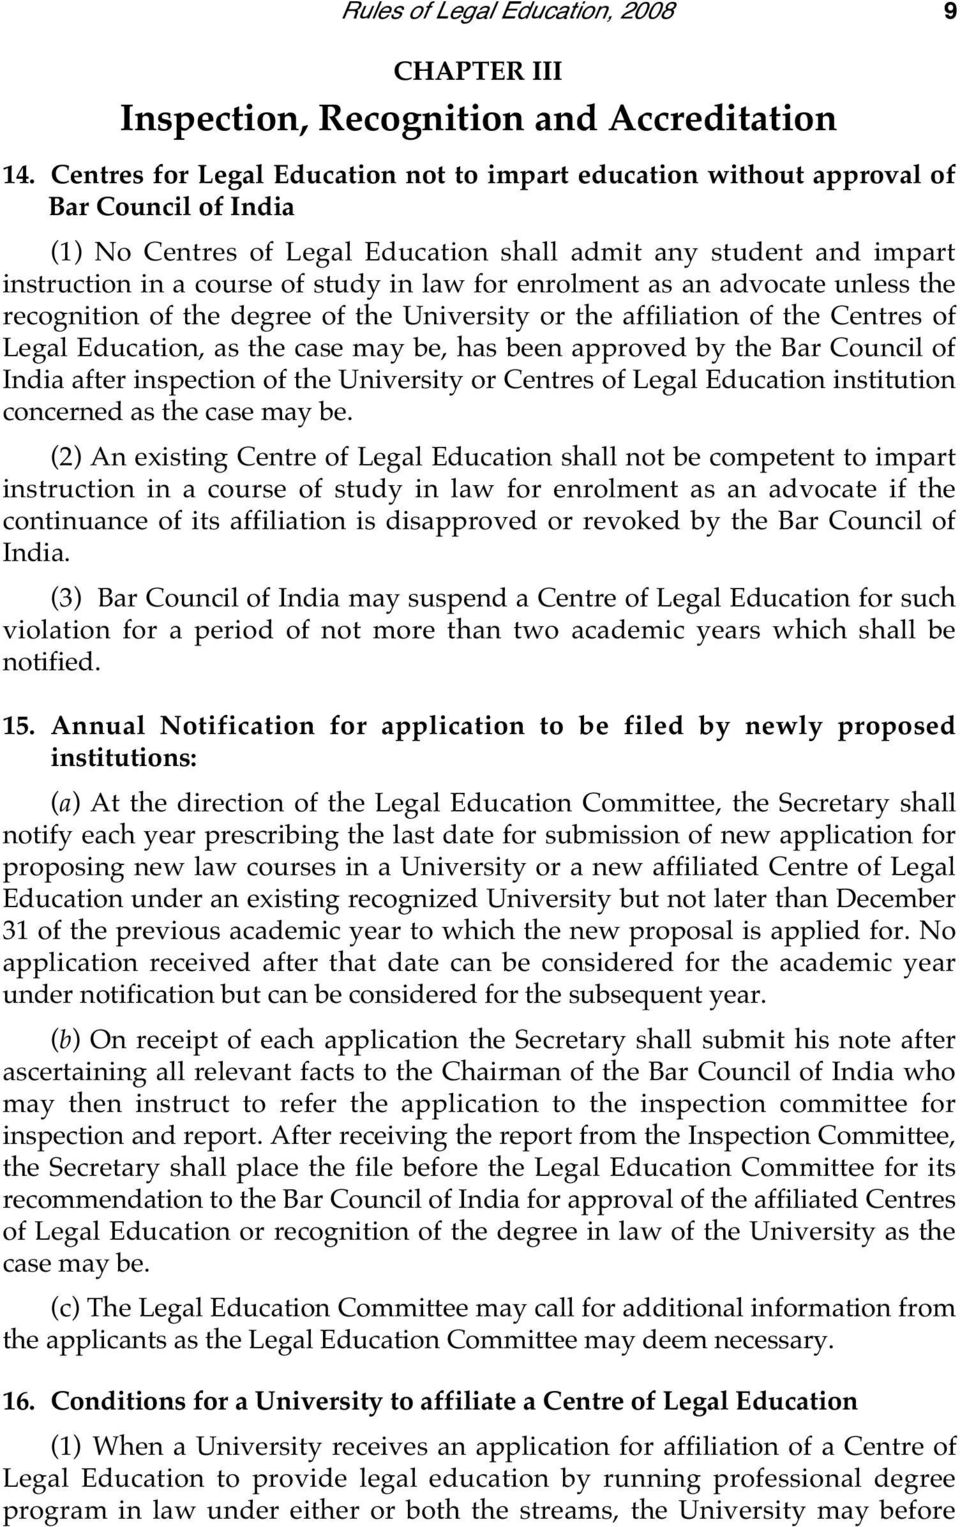 law for enrolment as an advocate unless the recognition of the degree of the University or the affiliation of the Centres of Legal Education, as the case may be, has been approved by the Bar Council